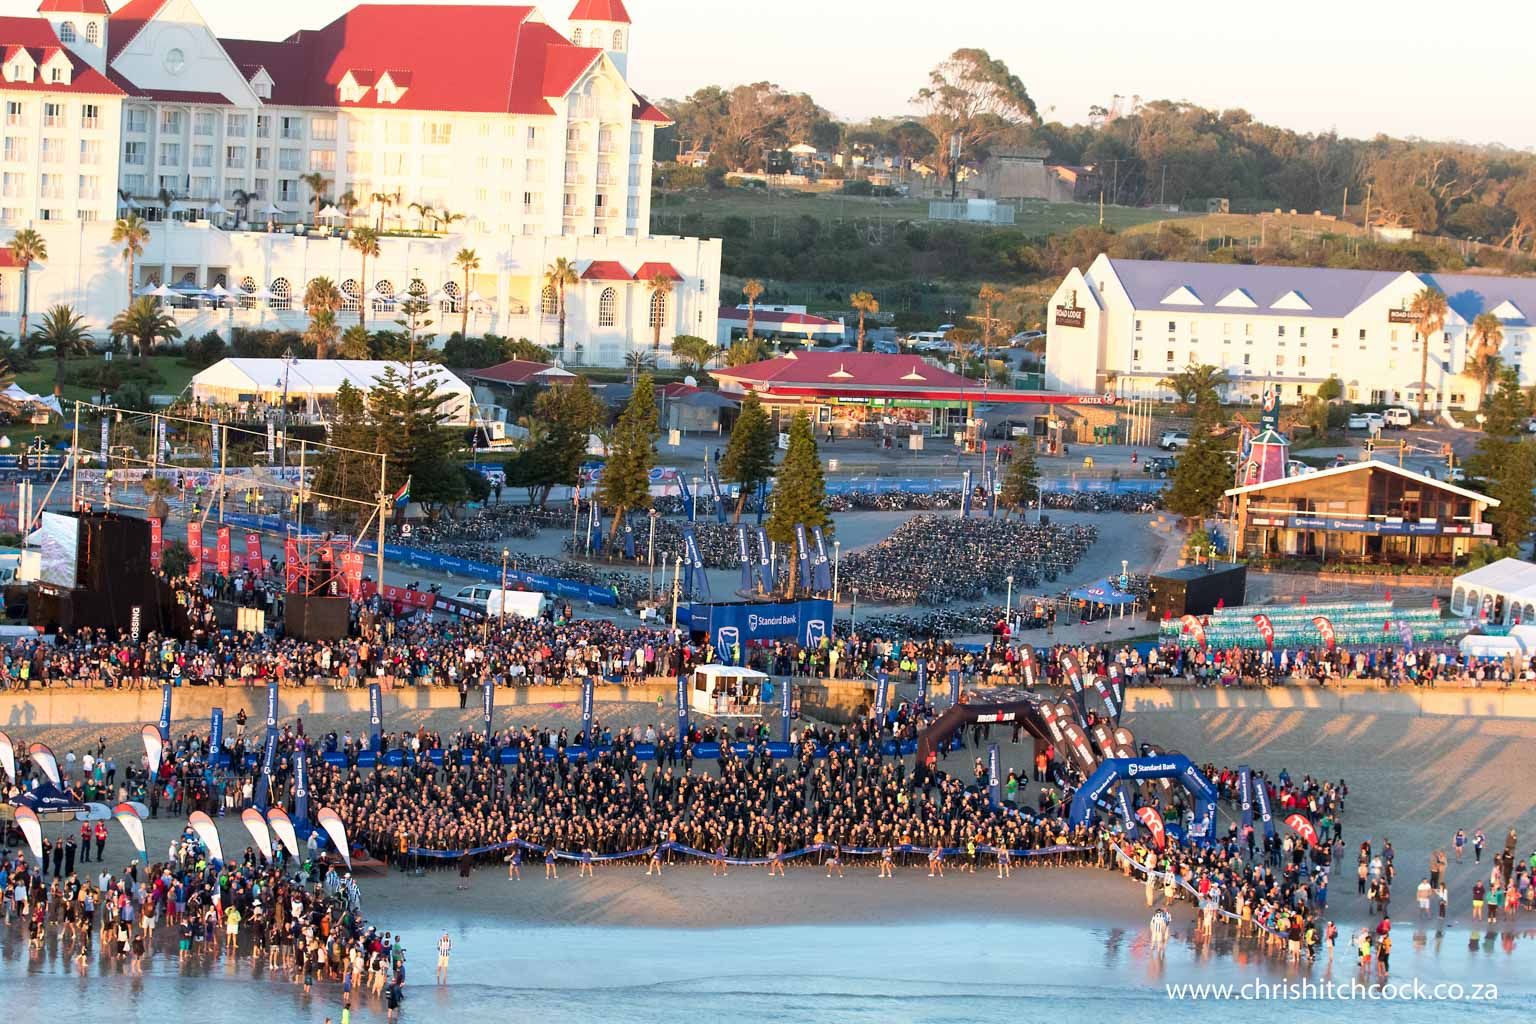 For me, as the event photographer, it is a 9 hour drive to the race from my home base in Cape Town. Always in the back of my mind, is the knowledge that when I get to Port Elizabeth I will be greeted by pristine beaches, a clean city, and thousands of welcoming locals. This photo is everything in one.